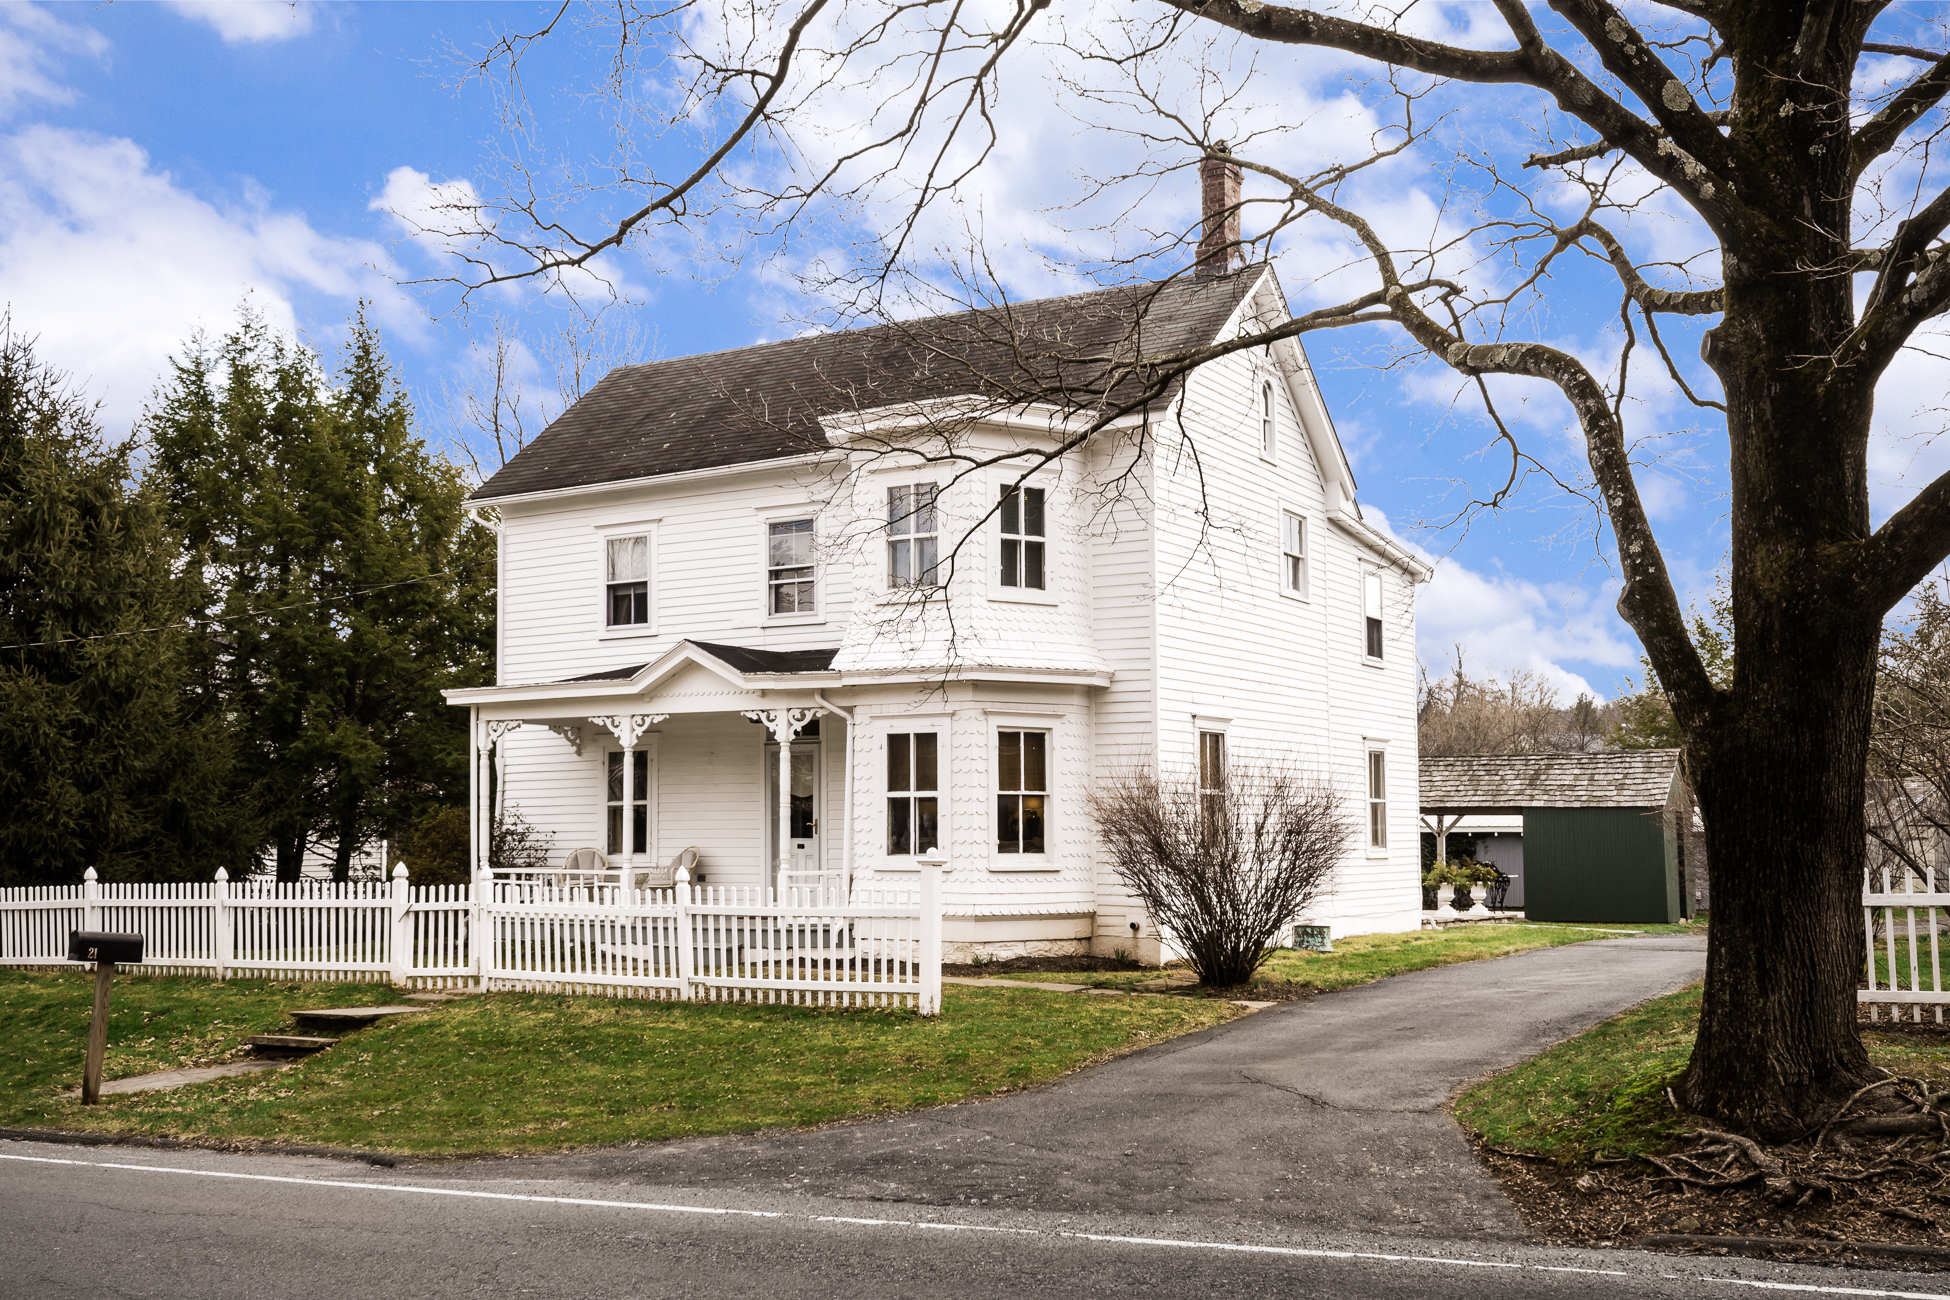 Single Family Home for Sale at A Piece Of History In The Borough 21 Louellen Street Hopewell, New Jersey, 08525 United States